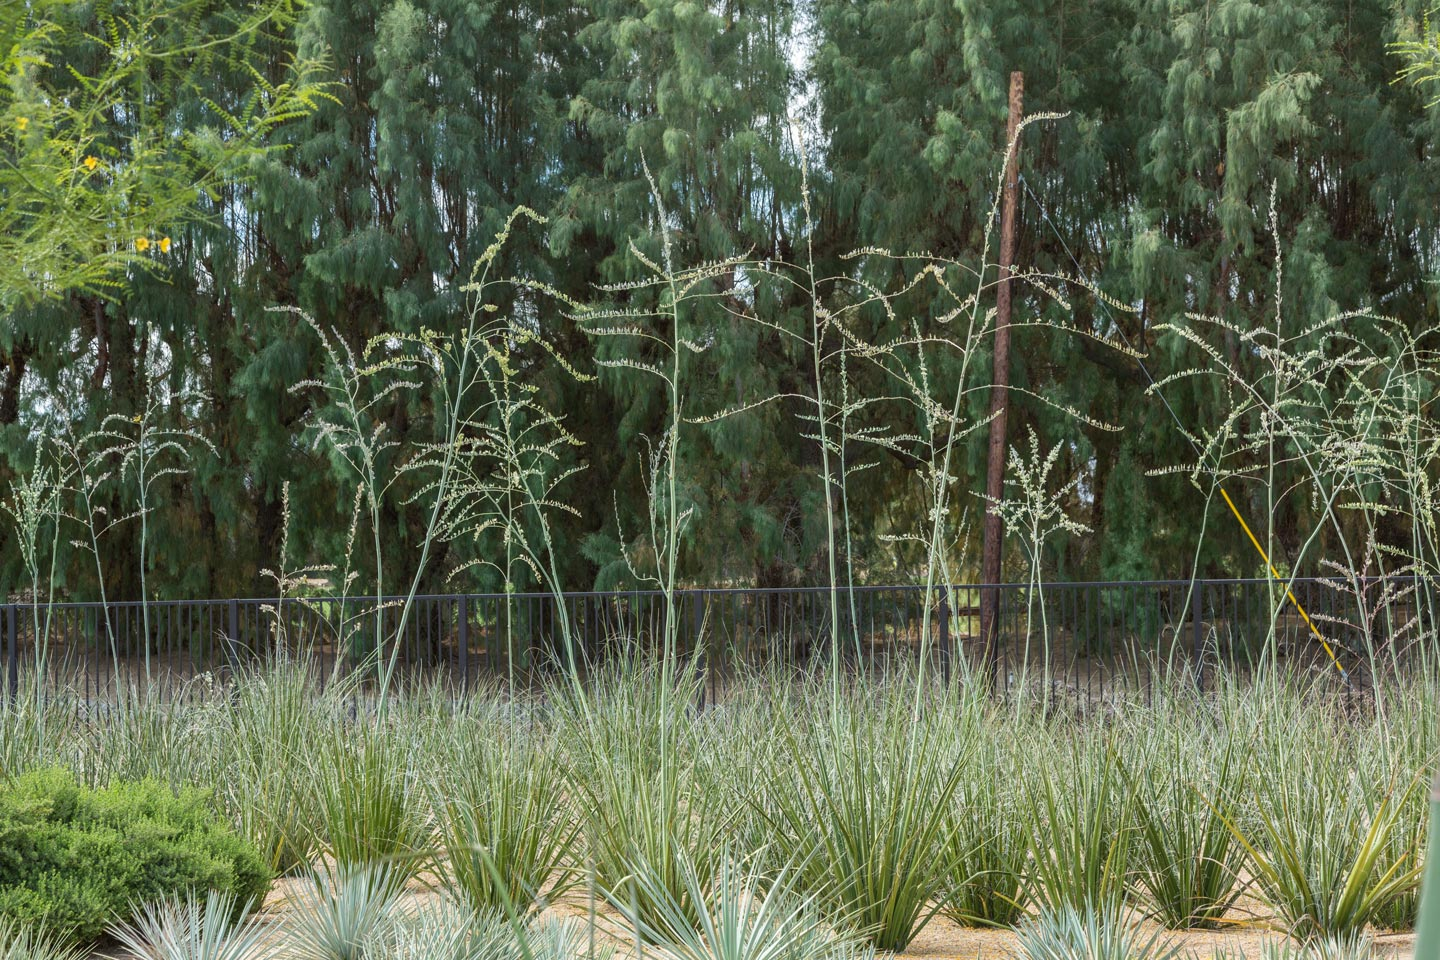 A group of flowering Giant Hesperaloes against a backdrop of a large row of dark green Tamarisk trees.